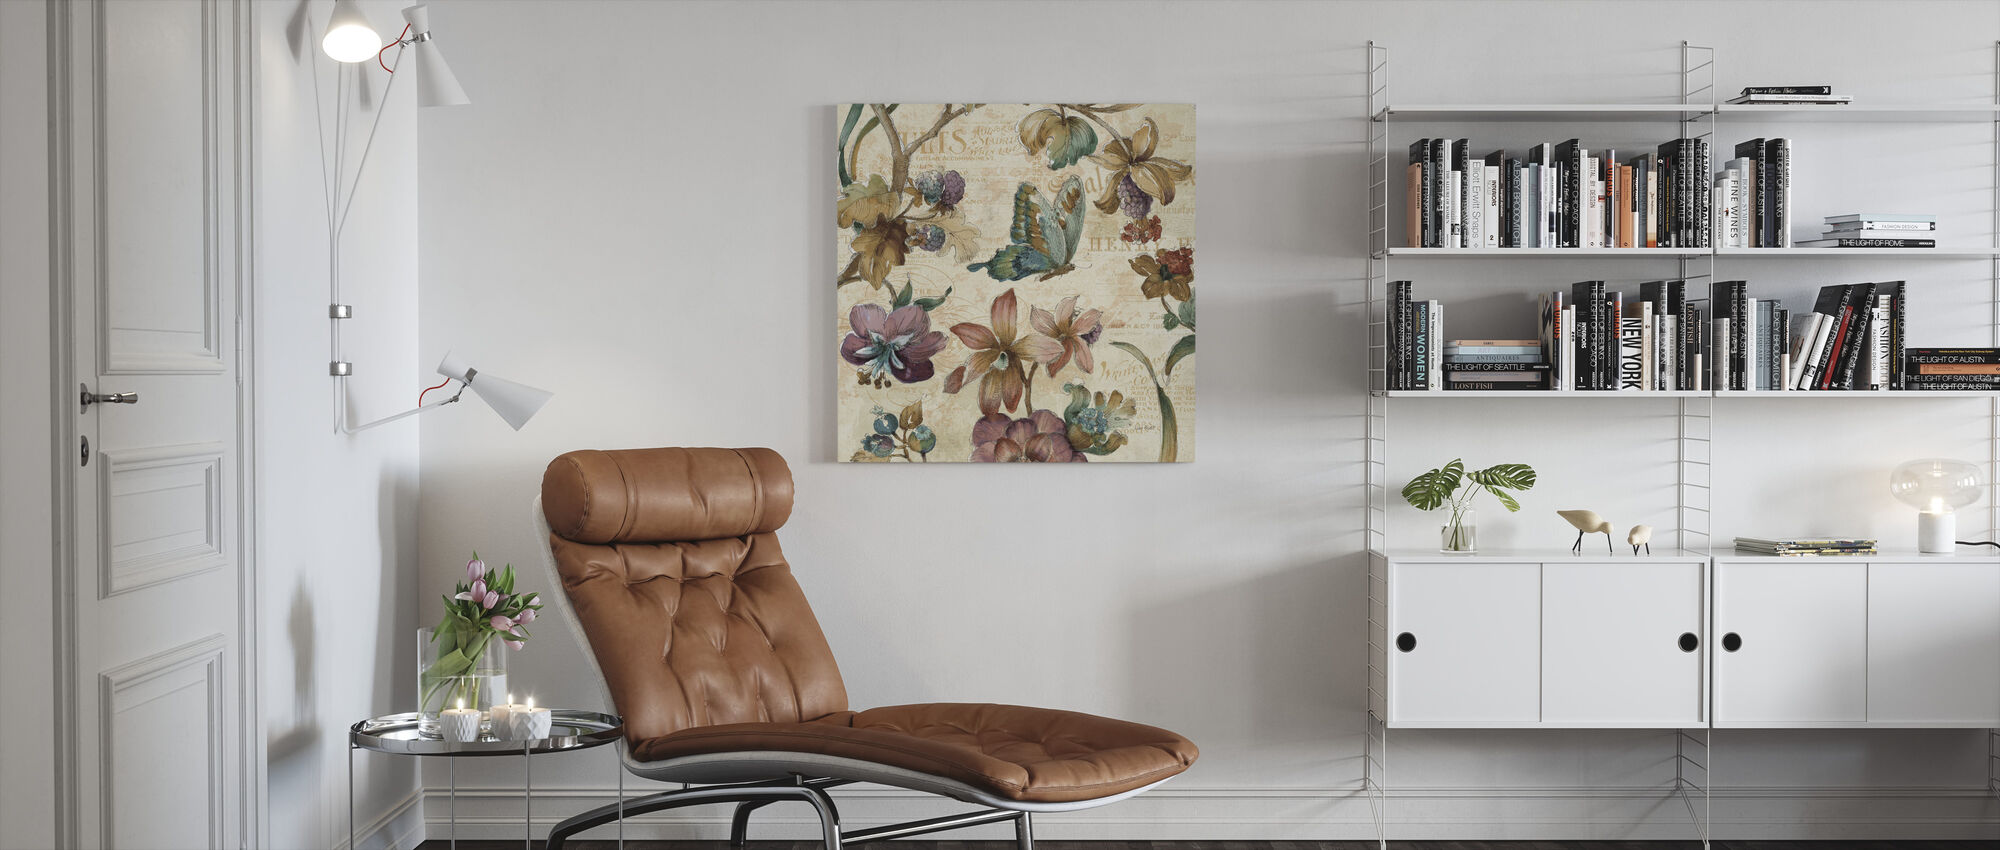 Een Tuin Moment - Canvas print - Woonkamer